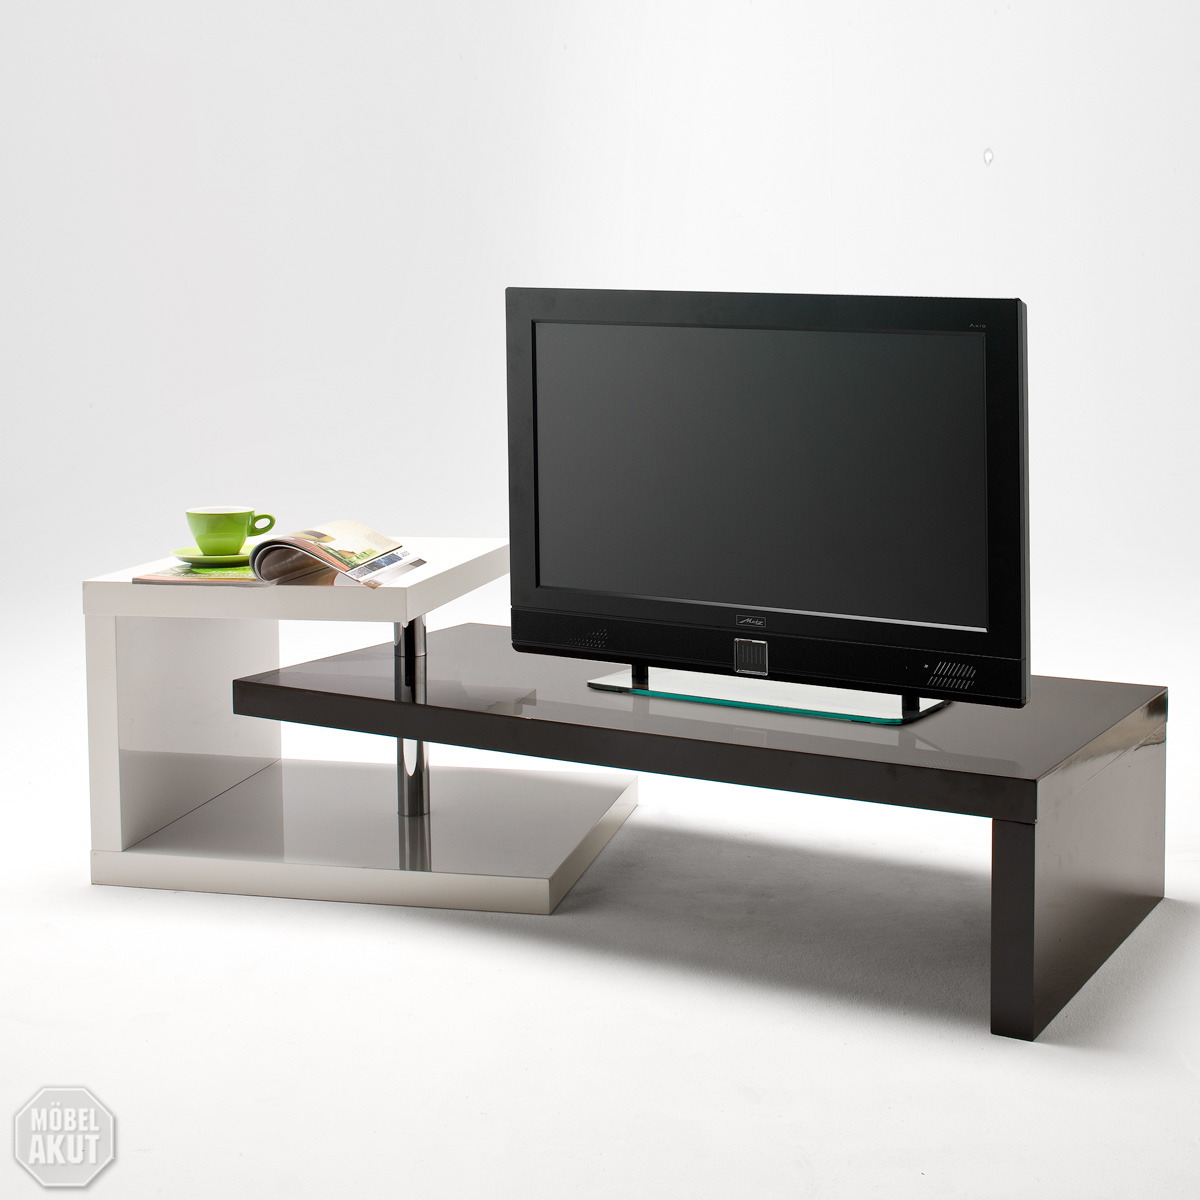 lowboard casale tv board media m bel in schwarz wei hochglanz neu ebay. Black Bedroom Furniture Sets. Home Design Ideas